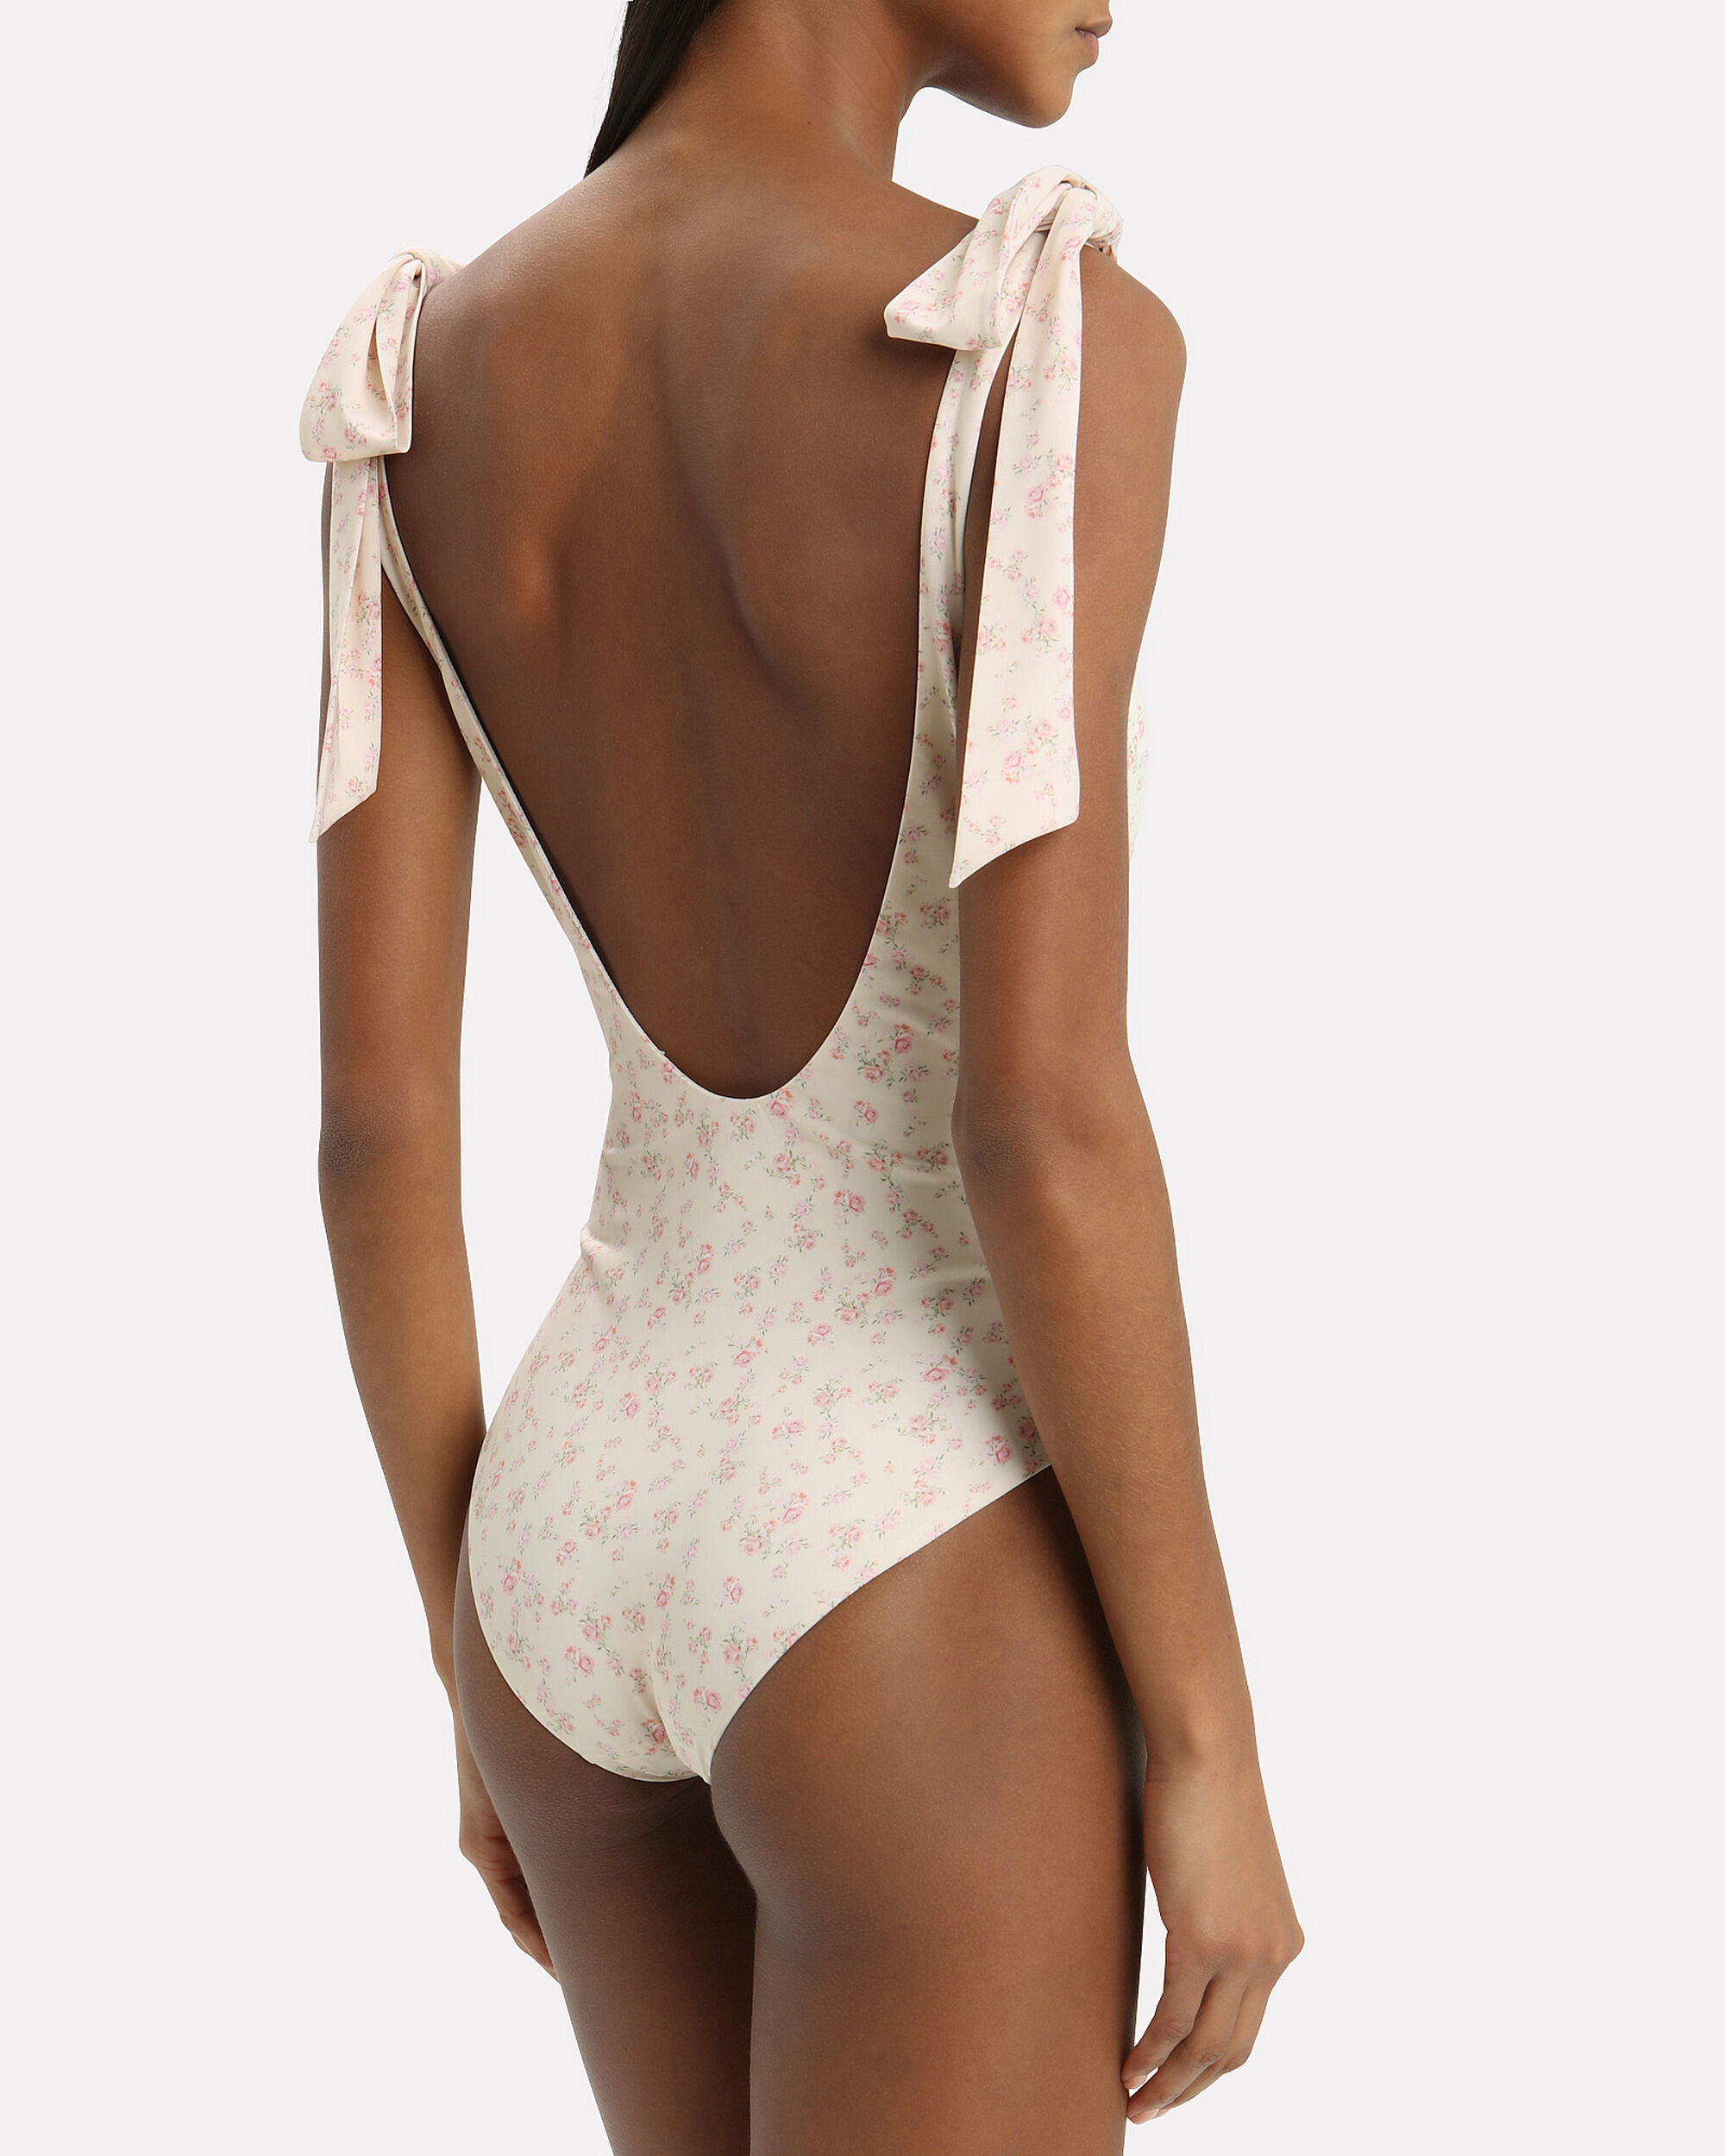 Posy Tie Shoulder Ivory One Piece Swimsuit, IVORY/PINK FLORAL, hi-res